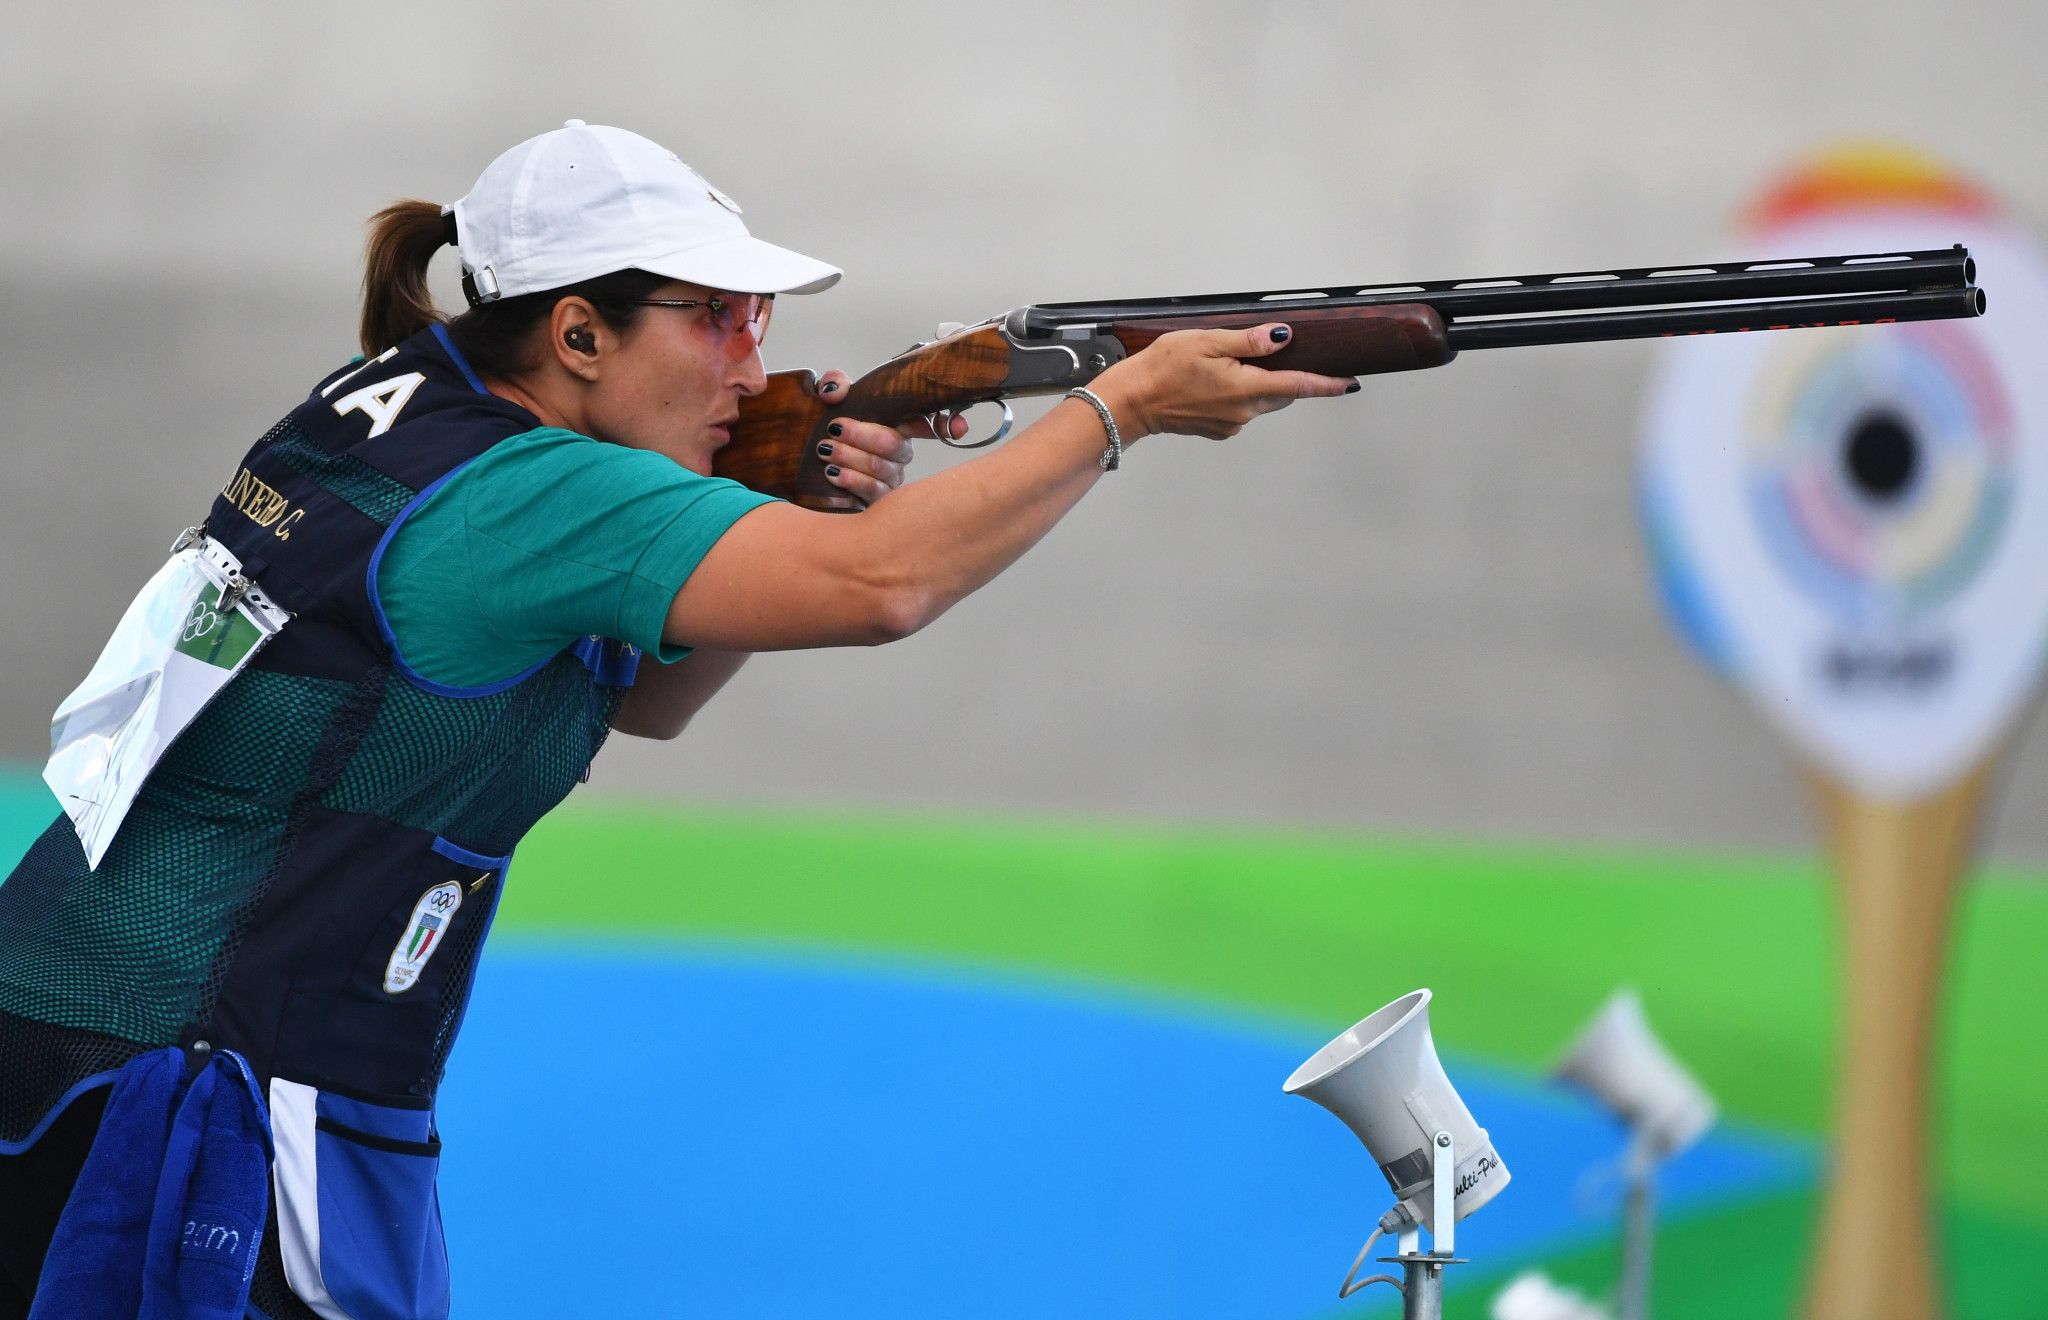 Italian shooters make strong start to ISSF Shotgun World Cup in Lonato